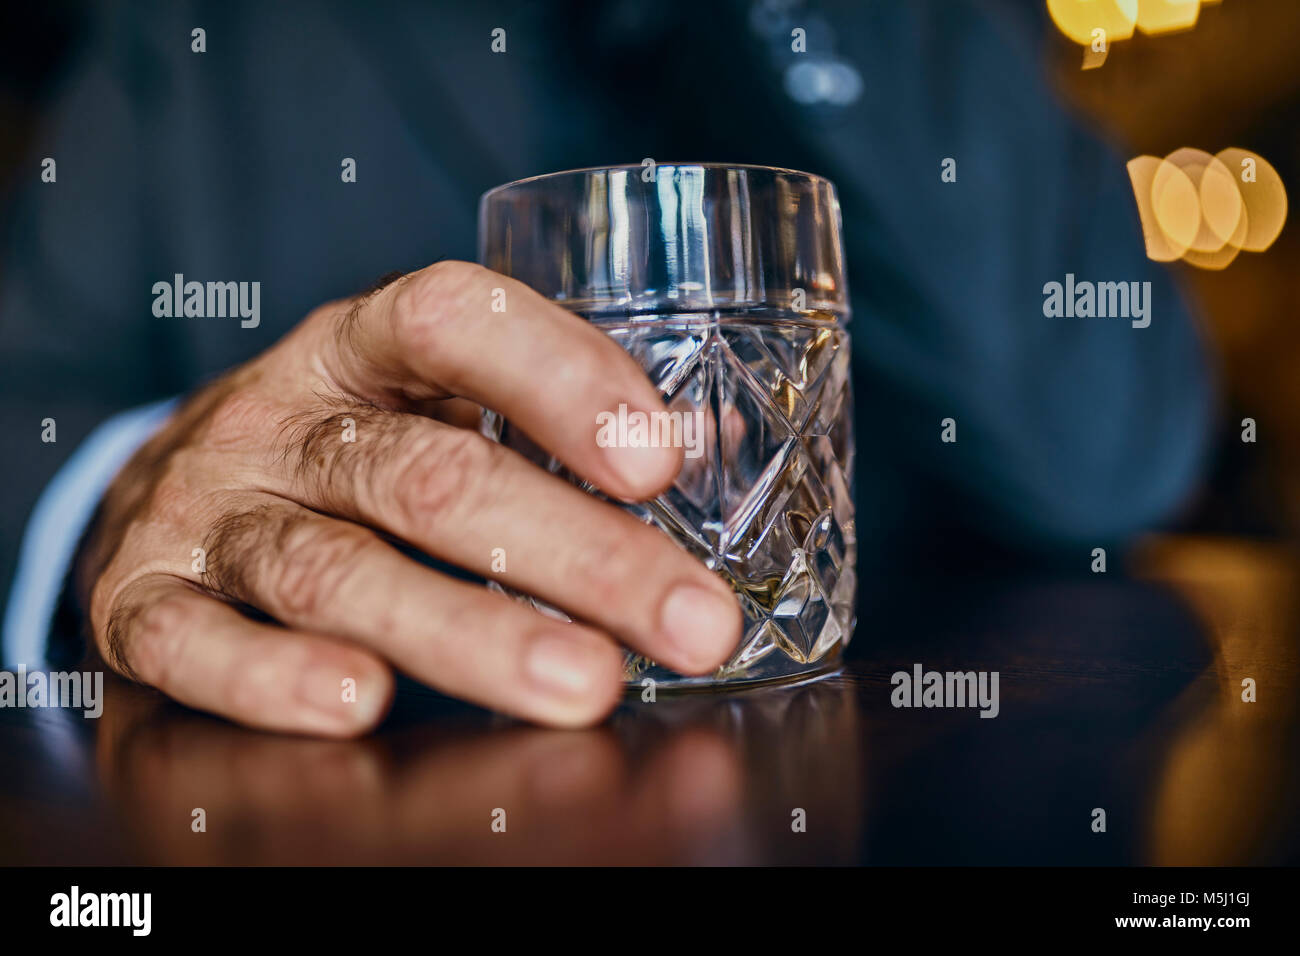 Close-up of man in a bar with tumbler - Stock Image